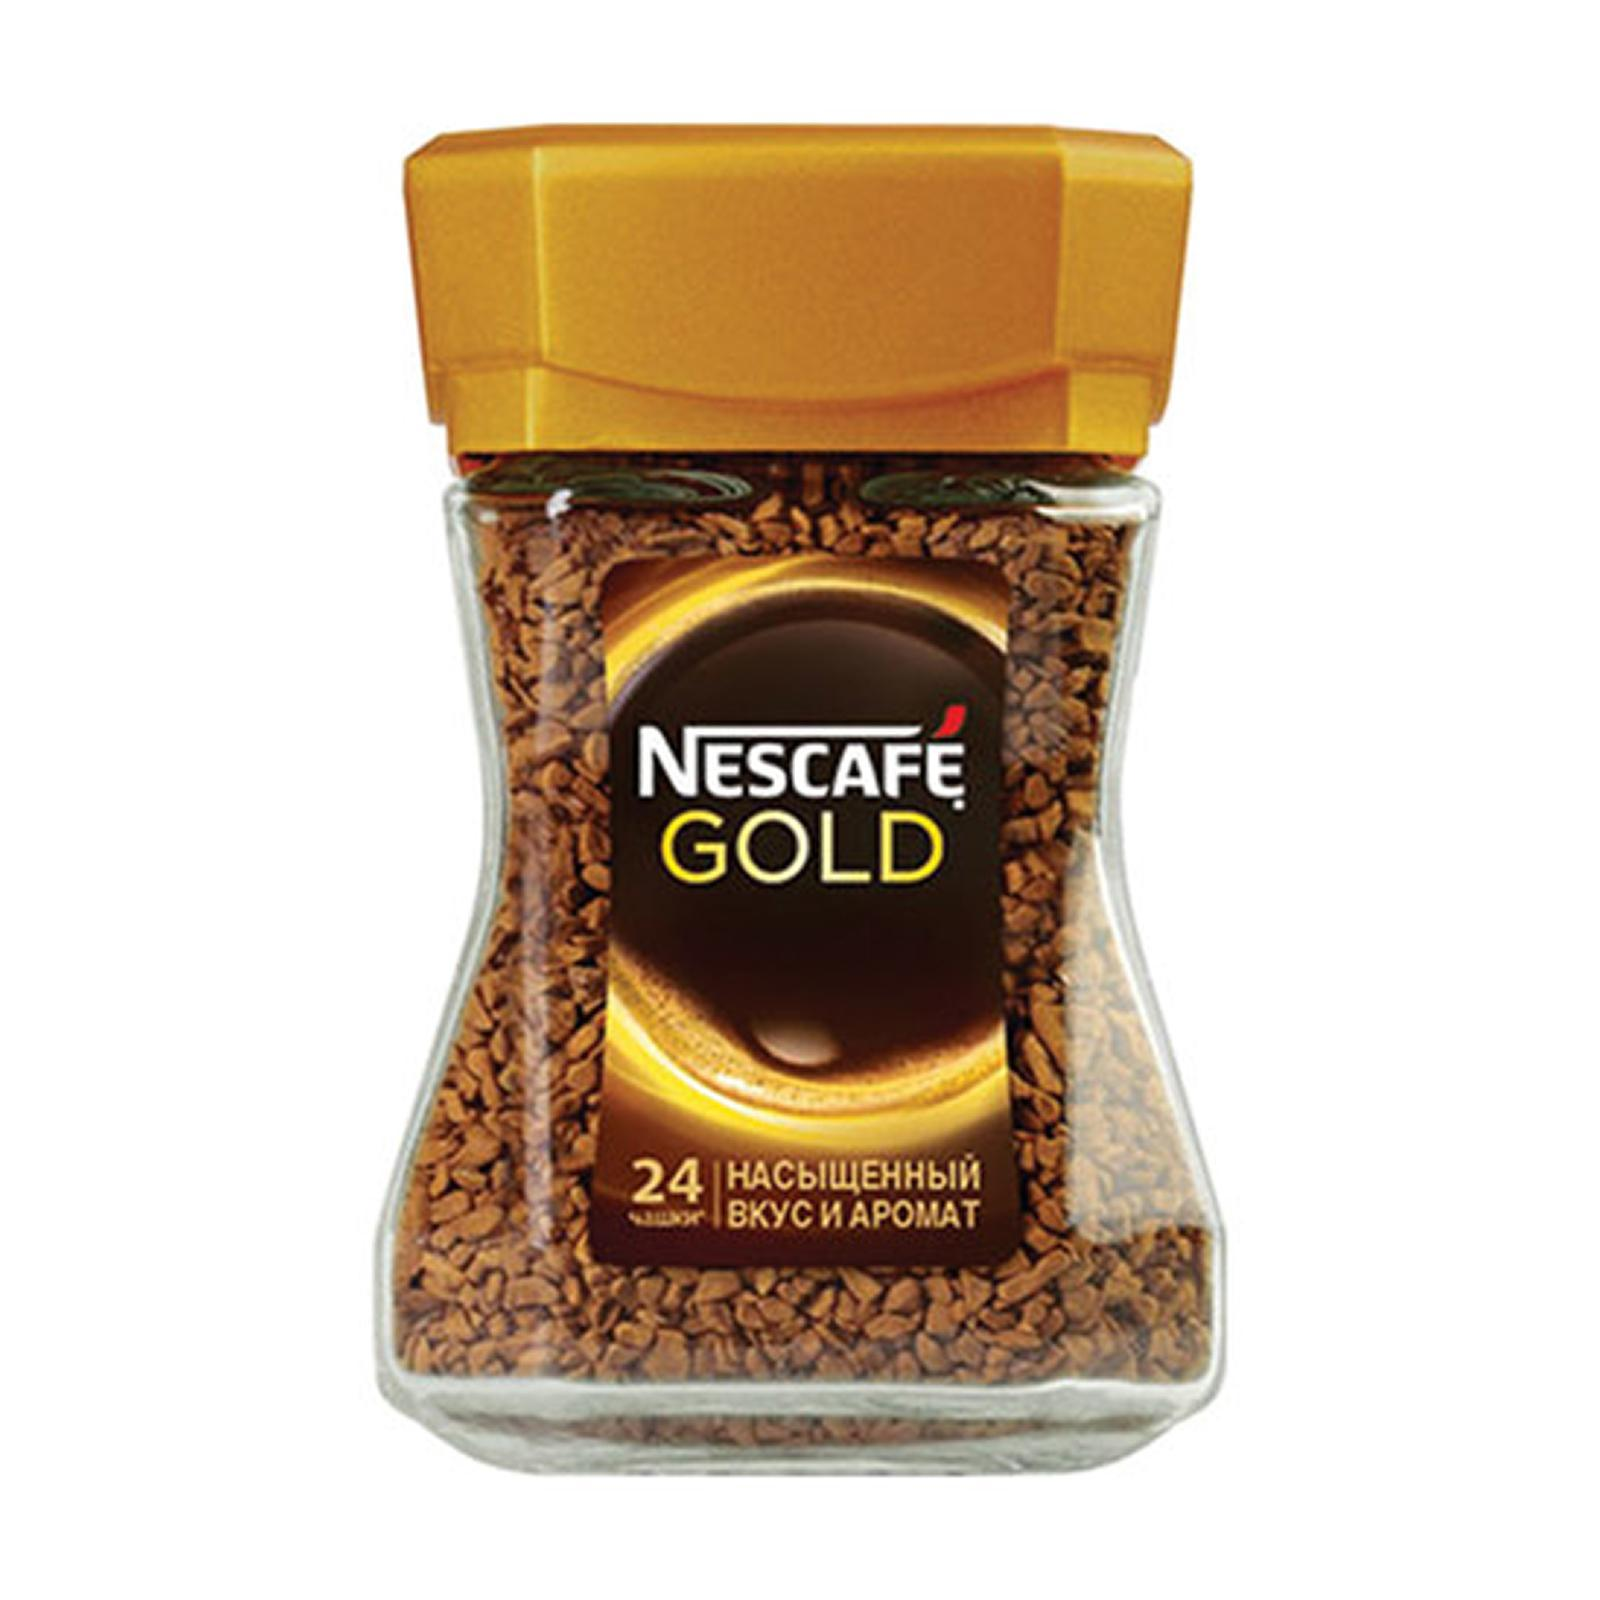 Nescafe Gold (Imported)